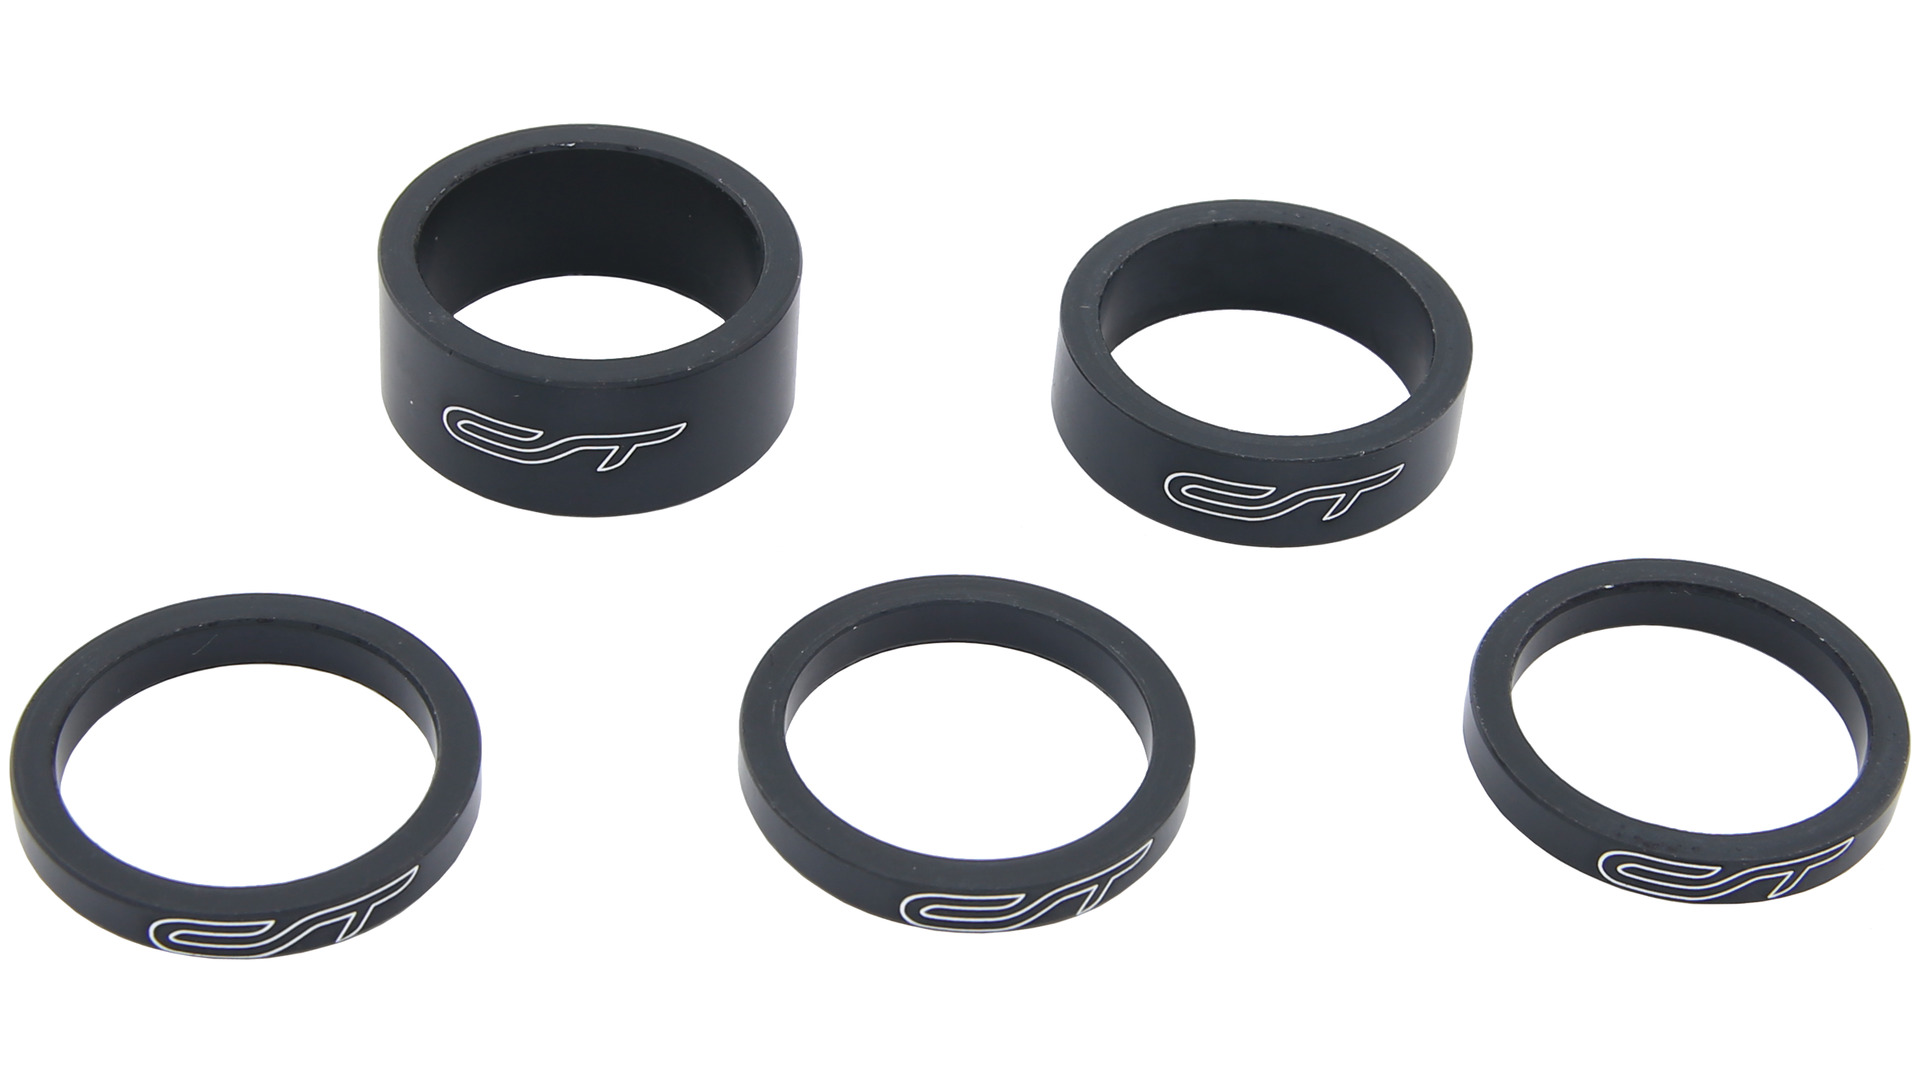 Contec Spacer Set 1 1/8 Inch 3x5/1x10/1x15mm Alu - Black